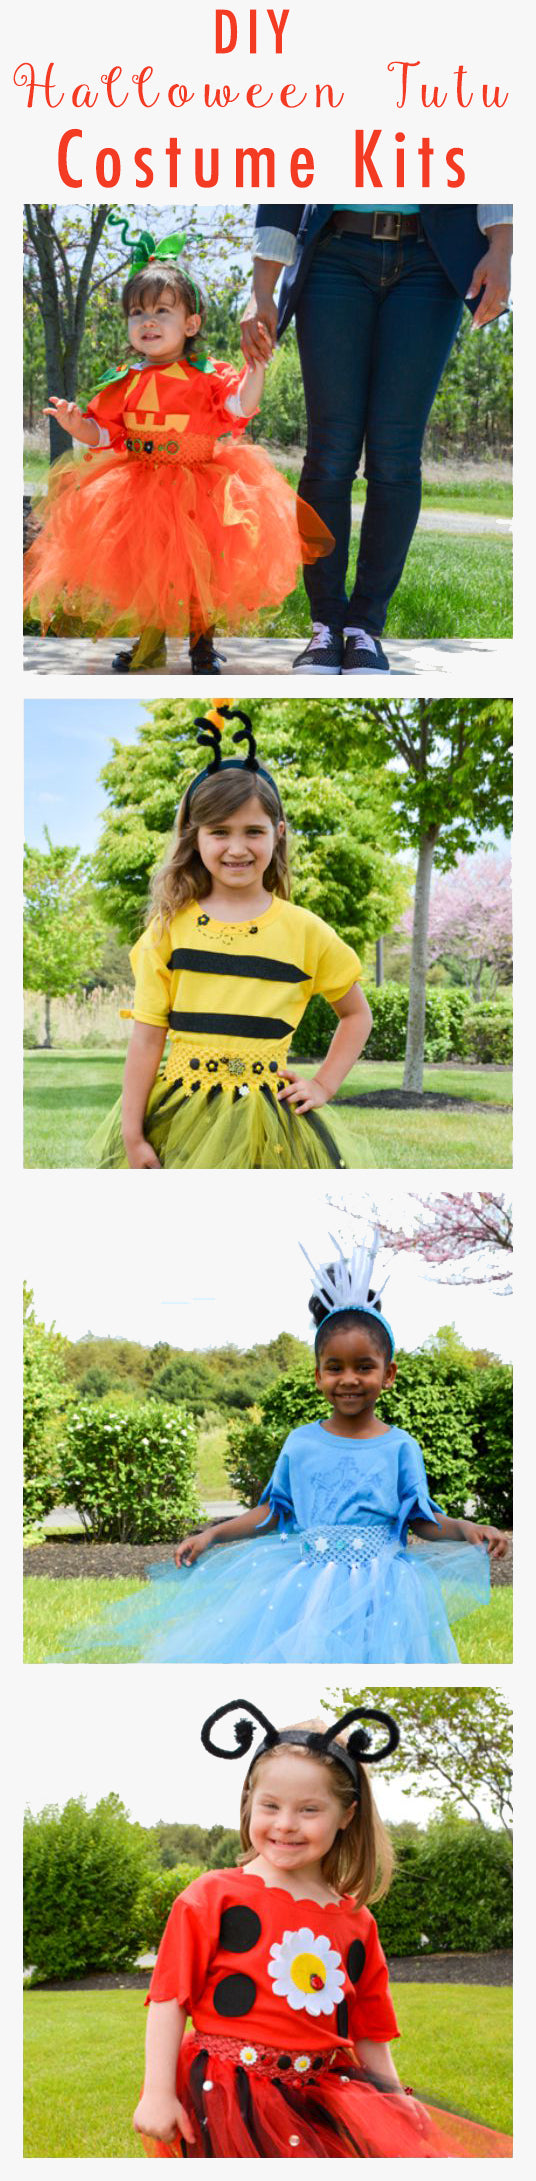 DIY Halloween Kids Costumes - Fun and easy costumes to create with your kid